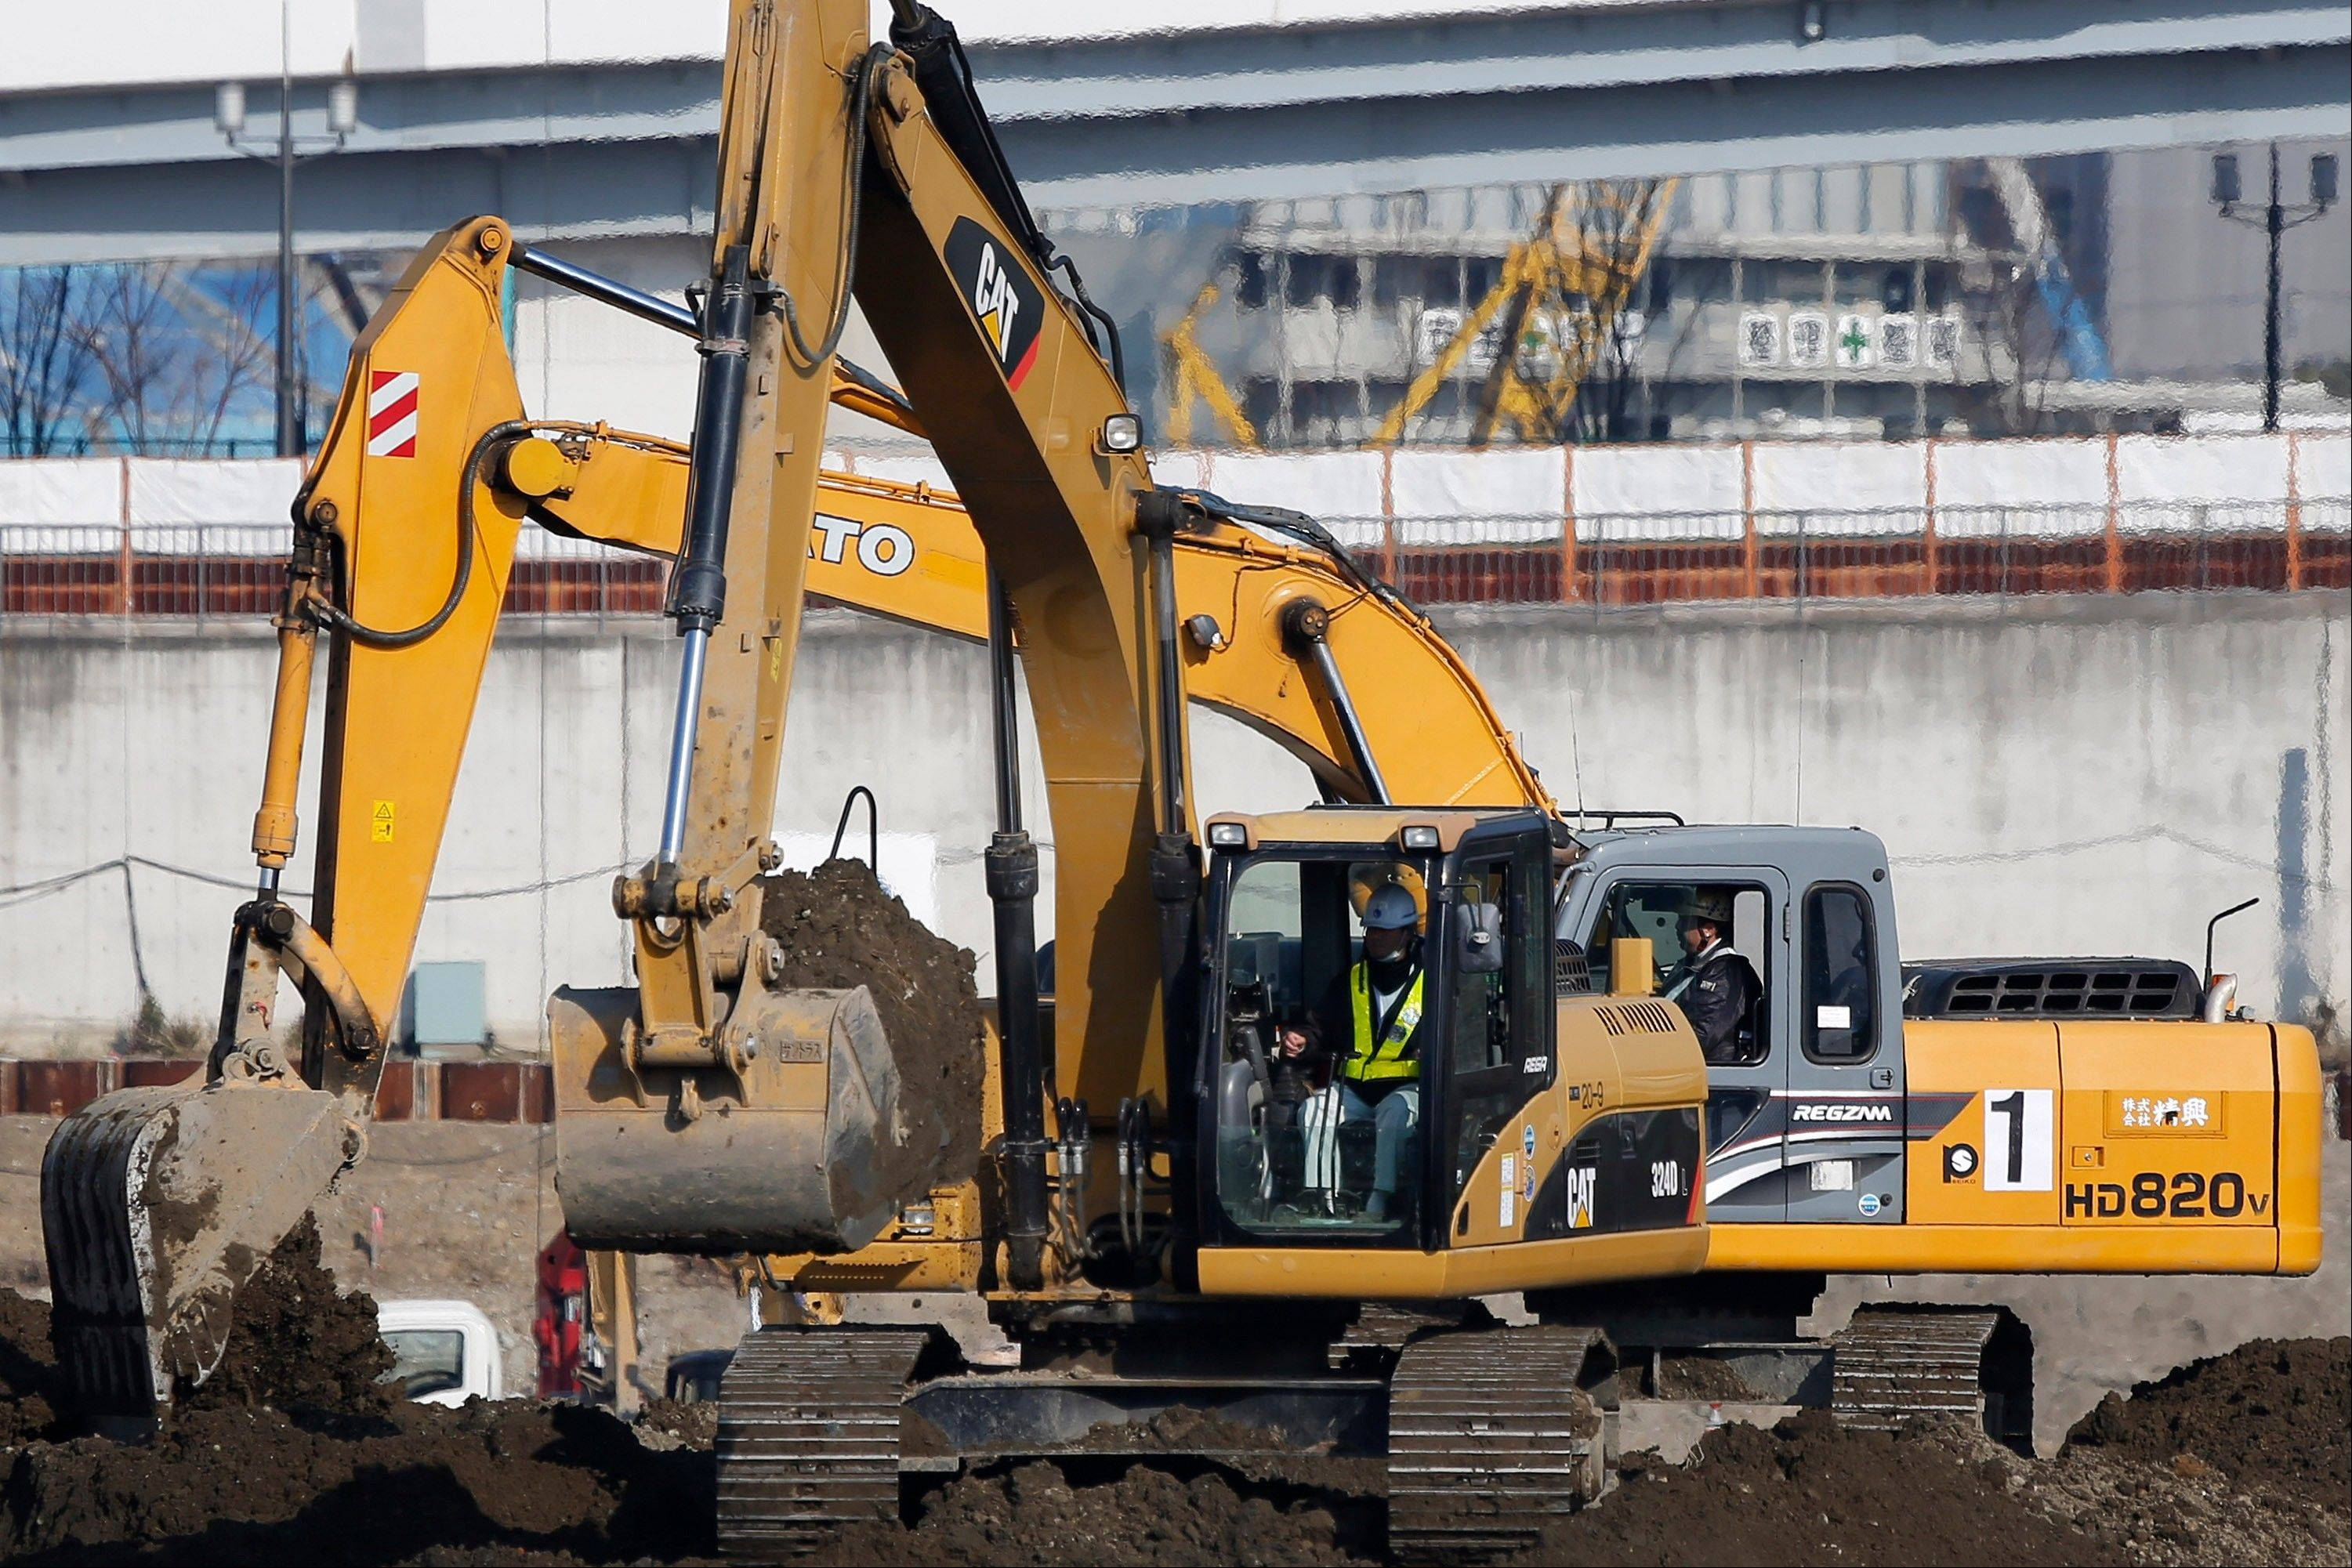 A Caterpillar excavator, front, operates on a construction site in Tokyo, Japan.